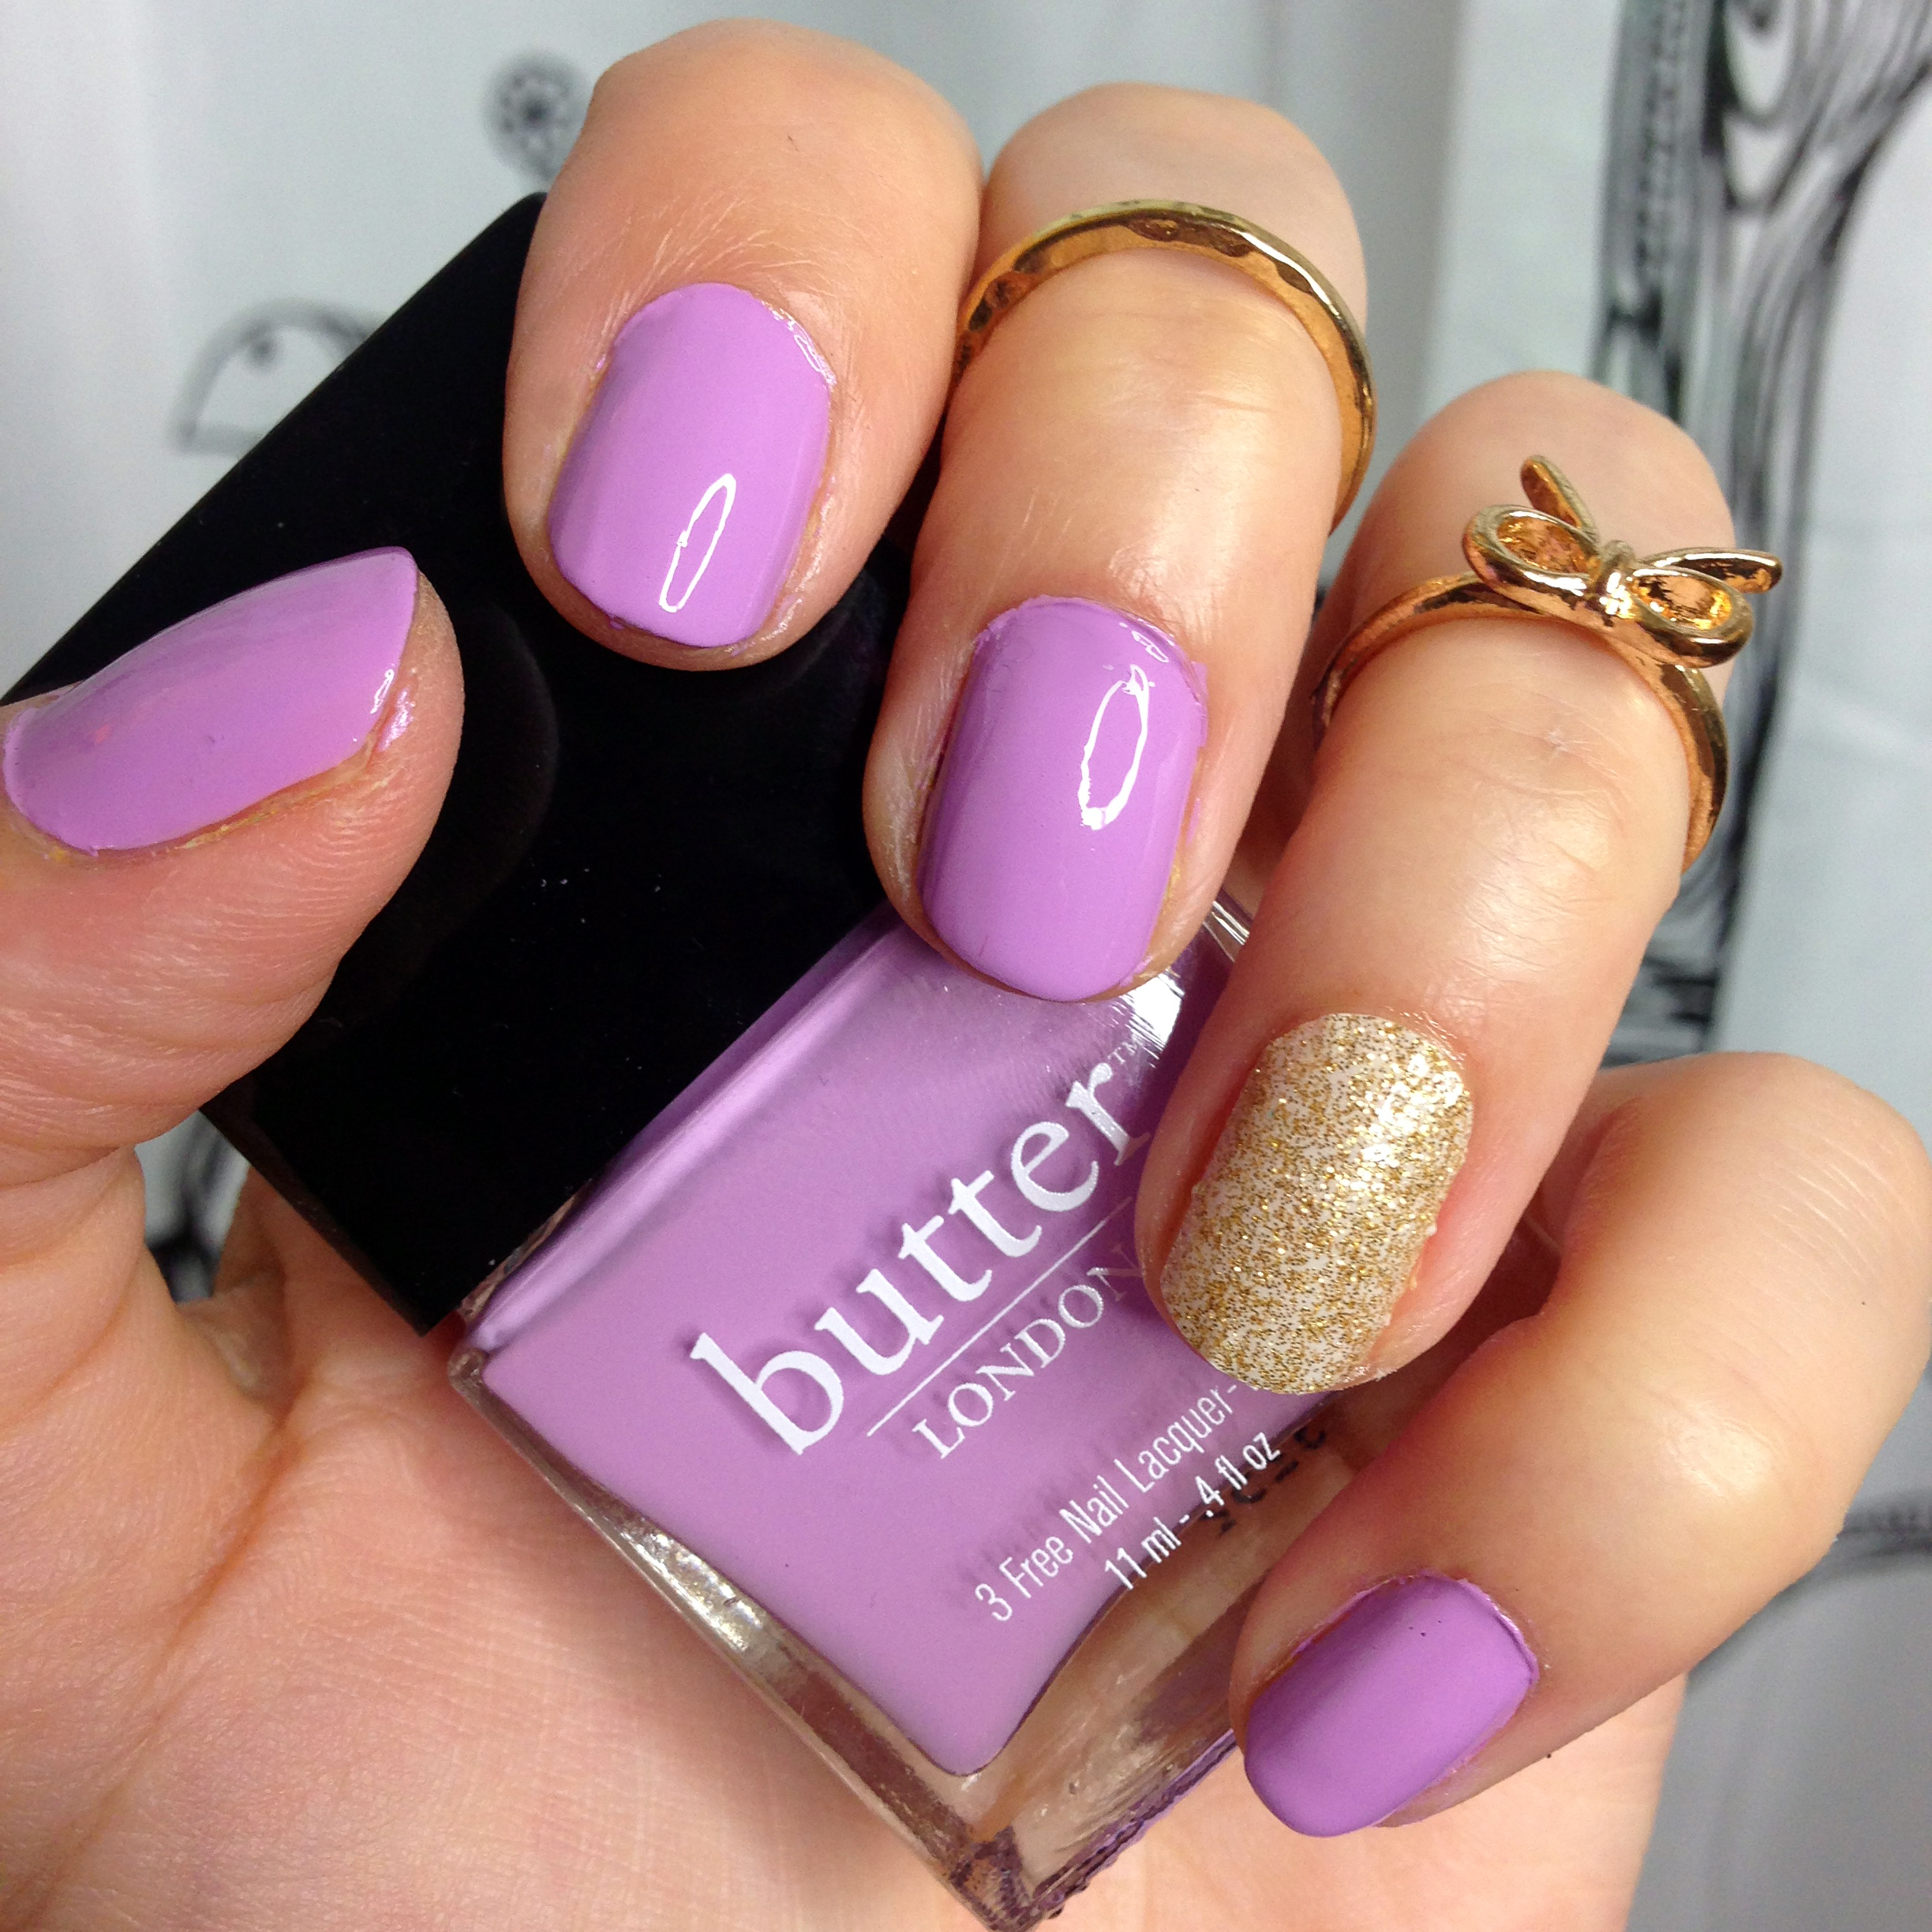 Manicure Monday: Butter London's Molly Coddled - Vegan Beauty Review | Vegan and Cruelty-Free Beauty, Fashion, Food, and Lifestyle